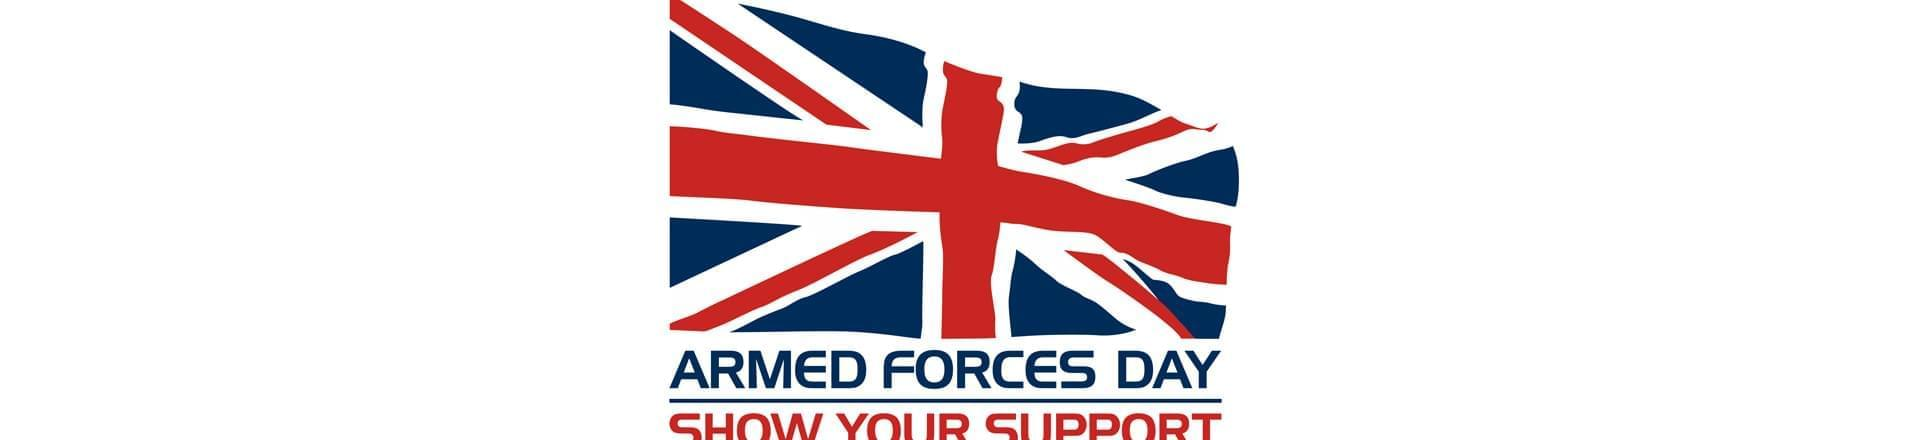 United Kingdom flag with words Armed Forces Day: Show Your Support